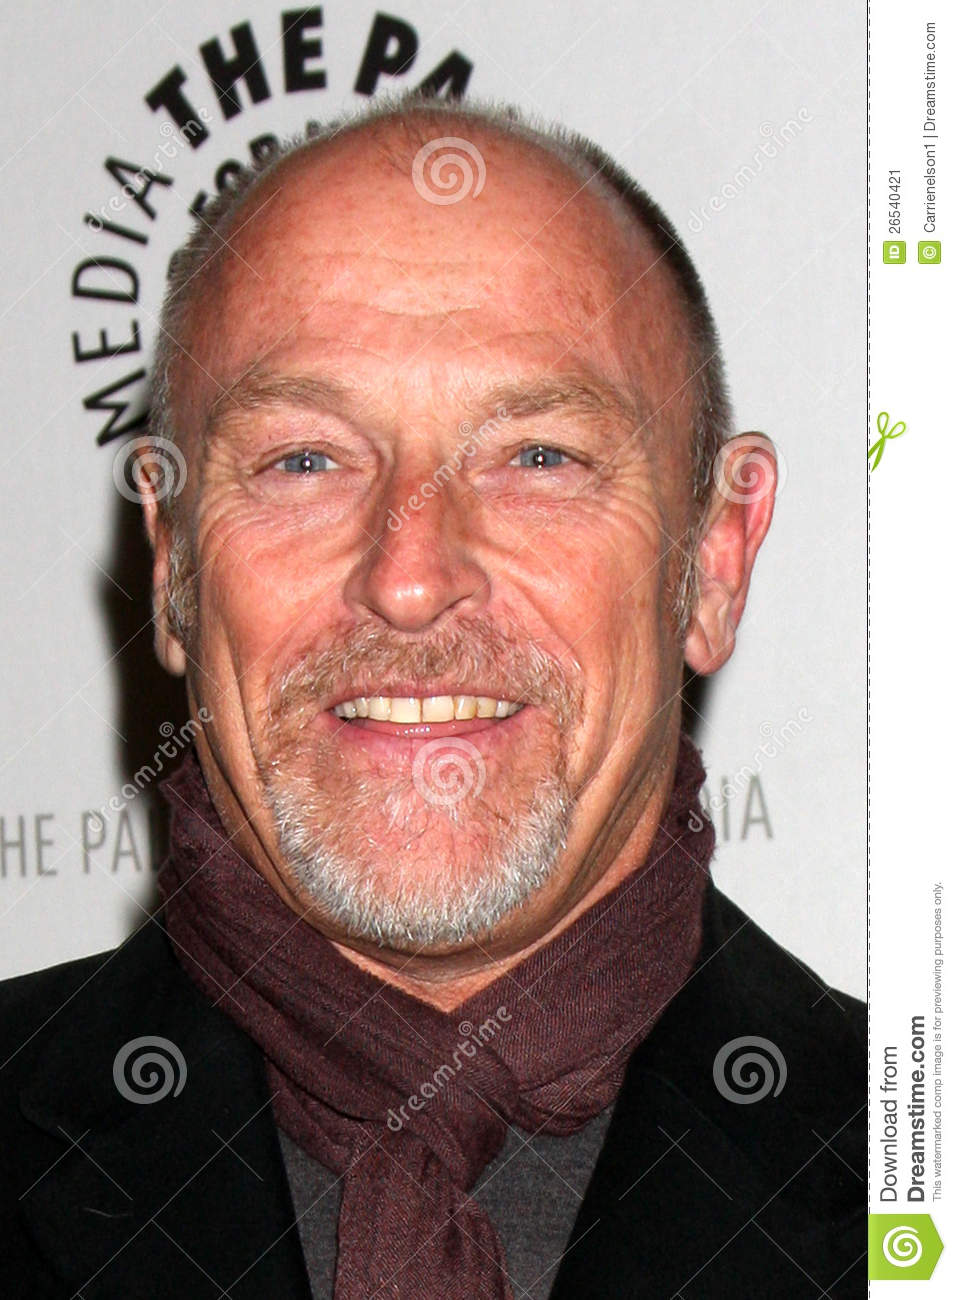 corbin bernsen shirtlesscorbin bernsen wiki, corbin bernsen imdb, corbin bernsen wife, corbin bernsen twitter, corbin bernsen net worth, corbin bernsen movies and tv shows, corbin bernsen mother, corbin bernsen amanda pays, corbin bernsen christian, corbin bernsen snow globes, corbin bernsen sons, corbin bernsen house, corbin bernsen star trek, corbin bernsen shirtless, corbin bernsen seinfeld, corbin bernsen leaving psych, corbin bernsen series crossword, corbin bernsen the dentist, corbin bernsen criminal minds